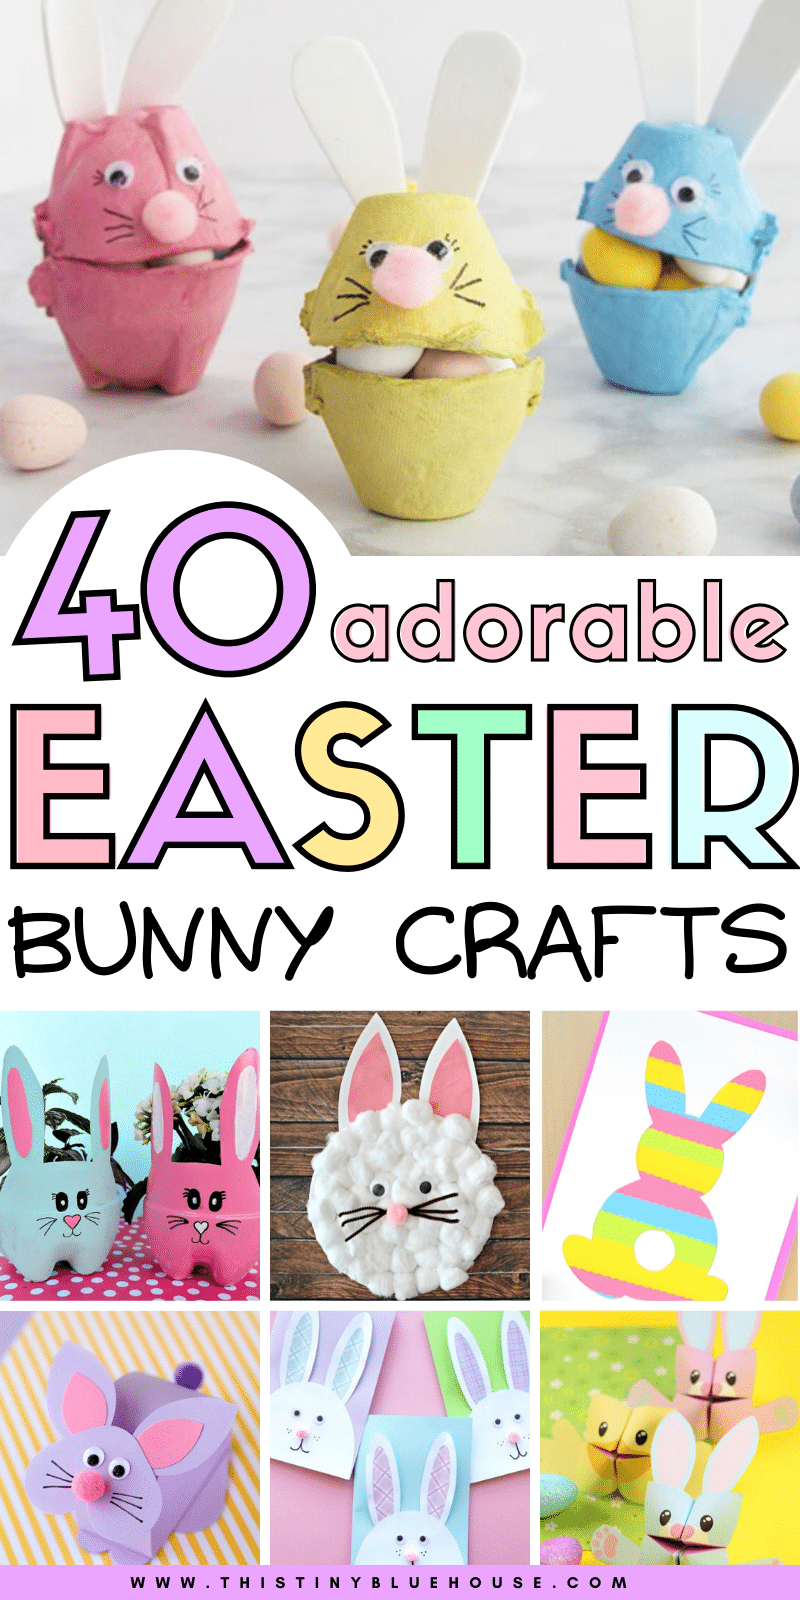 Get your kids excited about Easter with these fun, adorable and easy to make Easter bunny crafts. #eastercrafts #easterbunnycrafts #bunnycrafts #bunnycraftsforeaster #easyeastercraftsforkids #bunnycraftsforpreschoolers